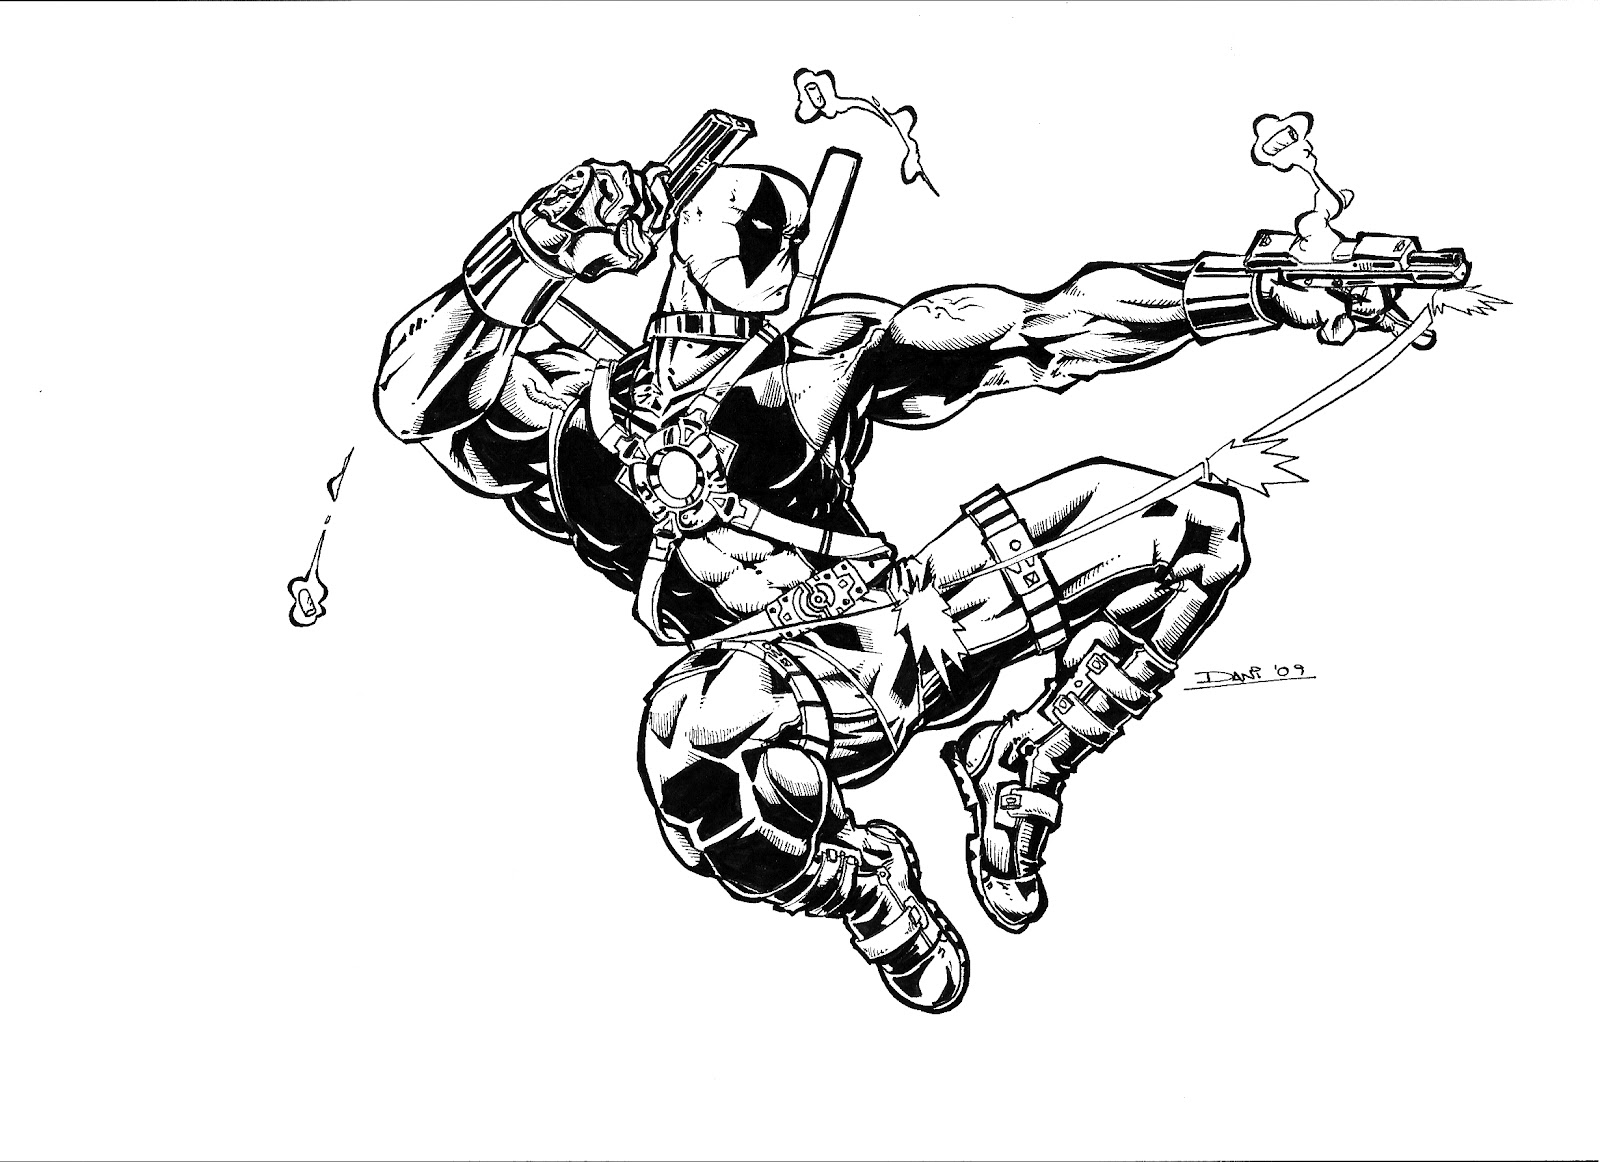 Deadpool Para Colorear Pintar E Imprimir: Imagenes Para Colorear De Deadpool Dahamon S Art Deadpool